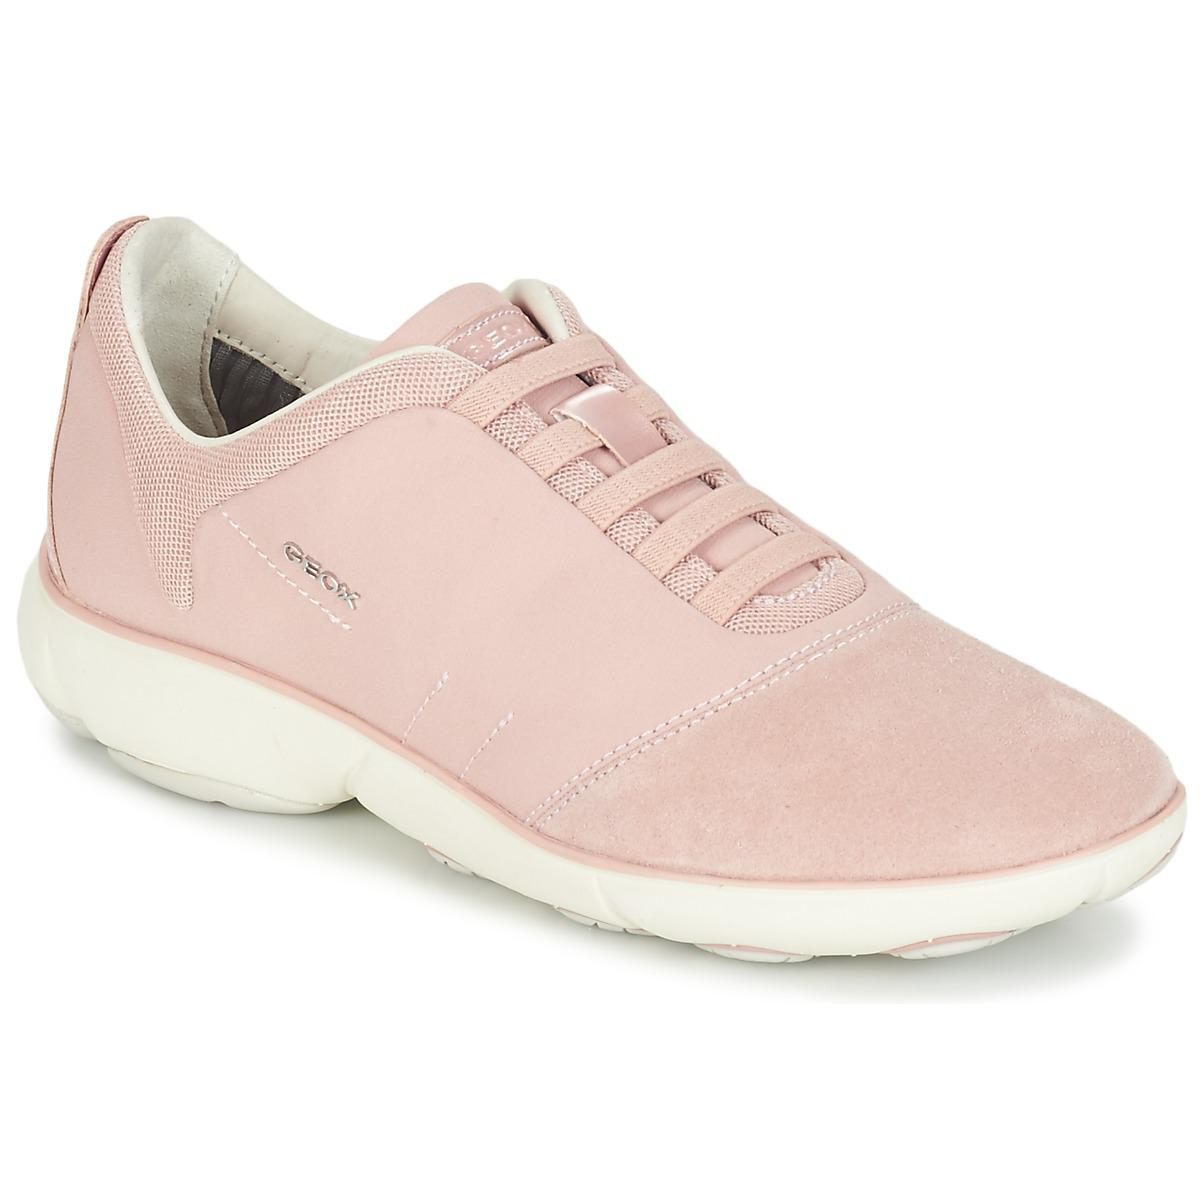 860fe623b70cd Geox D Nebula G Women s Shoes (trainers) In Pink in Pink - Lyst